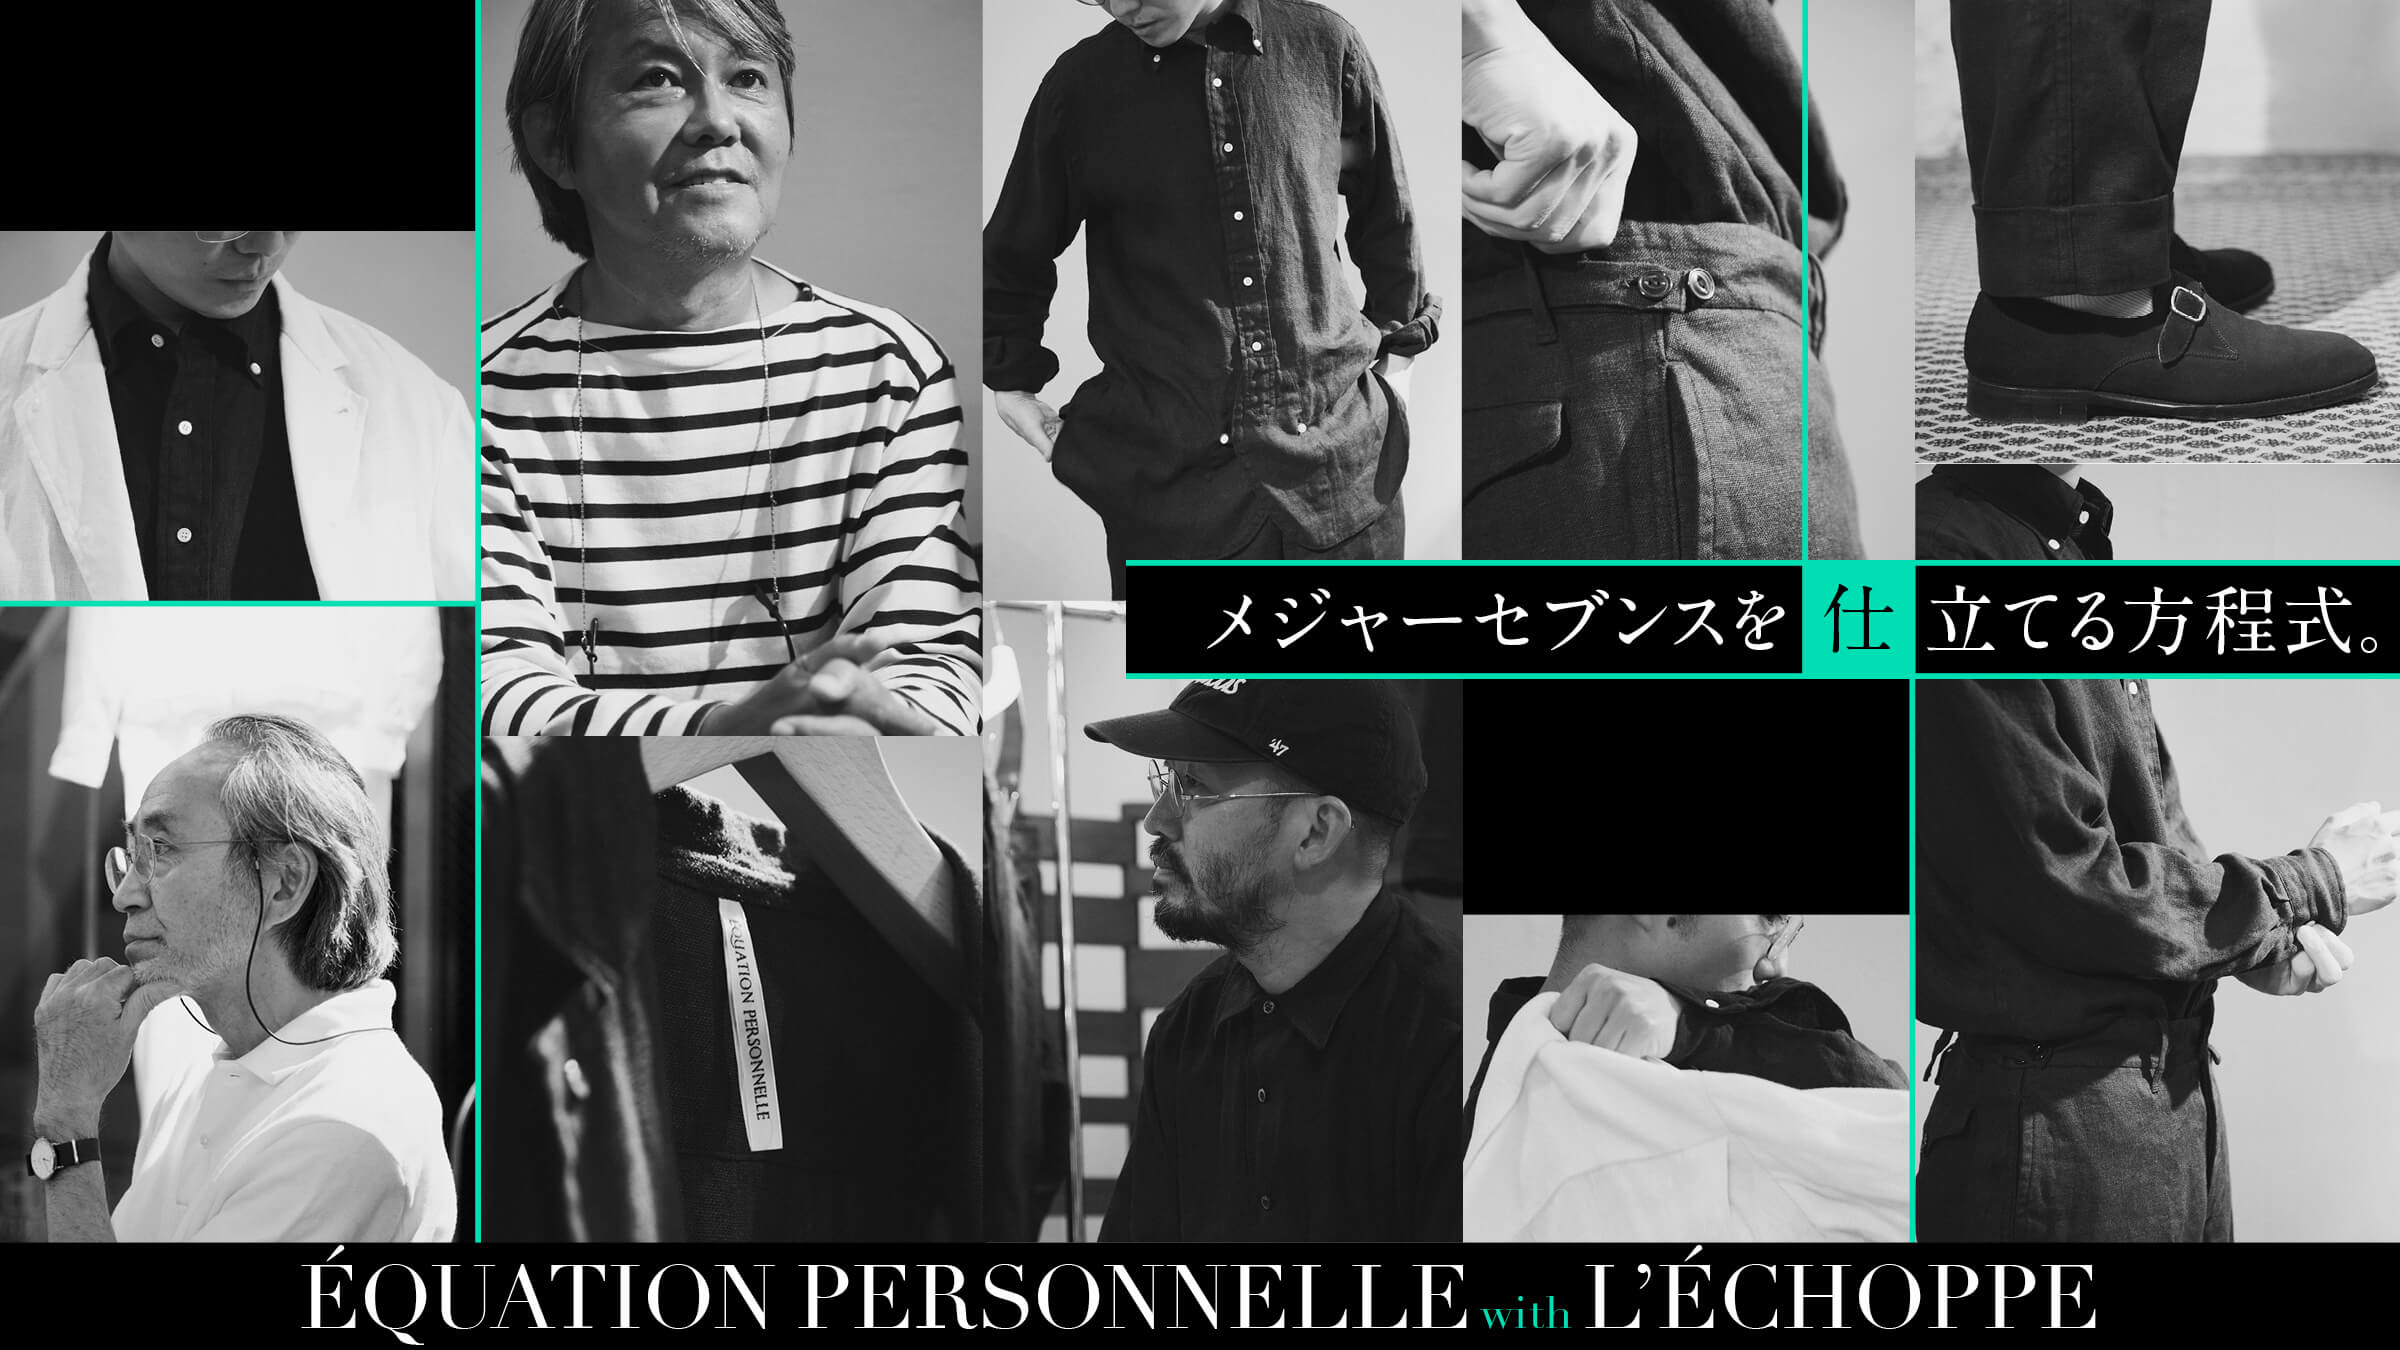 ÉQUATION PERSONNELLE with L'ECHOPPEメジャーセブンスを仕立てる方程式。